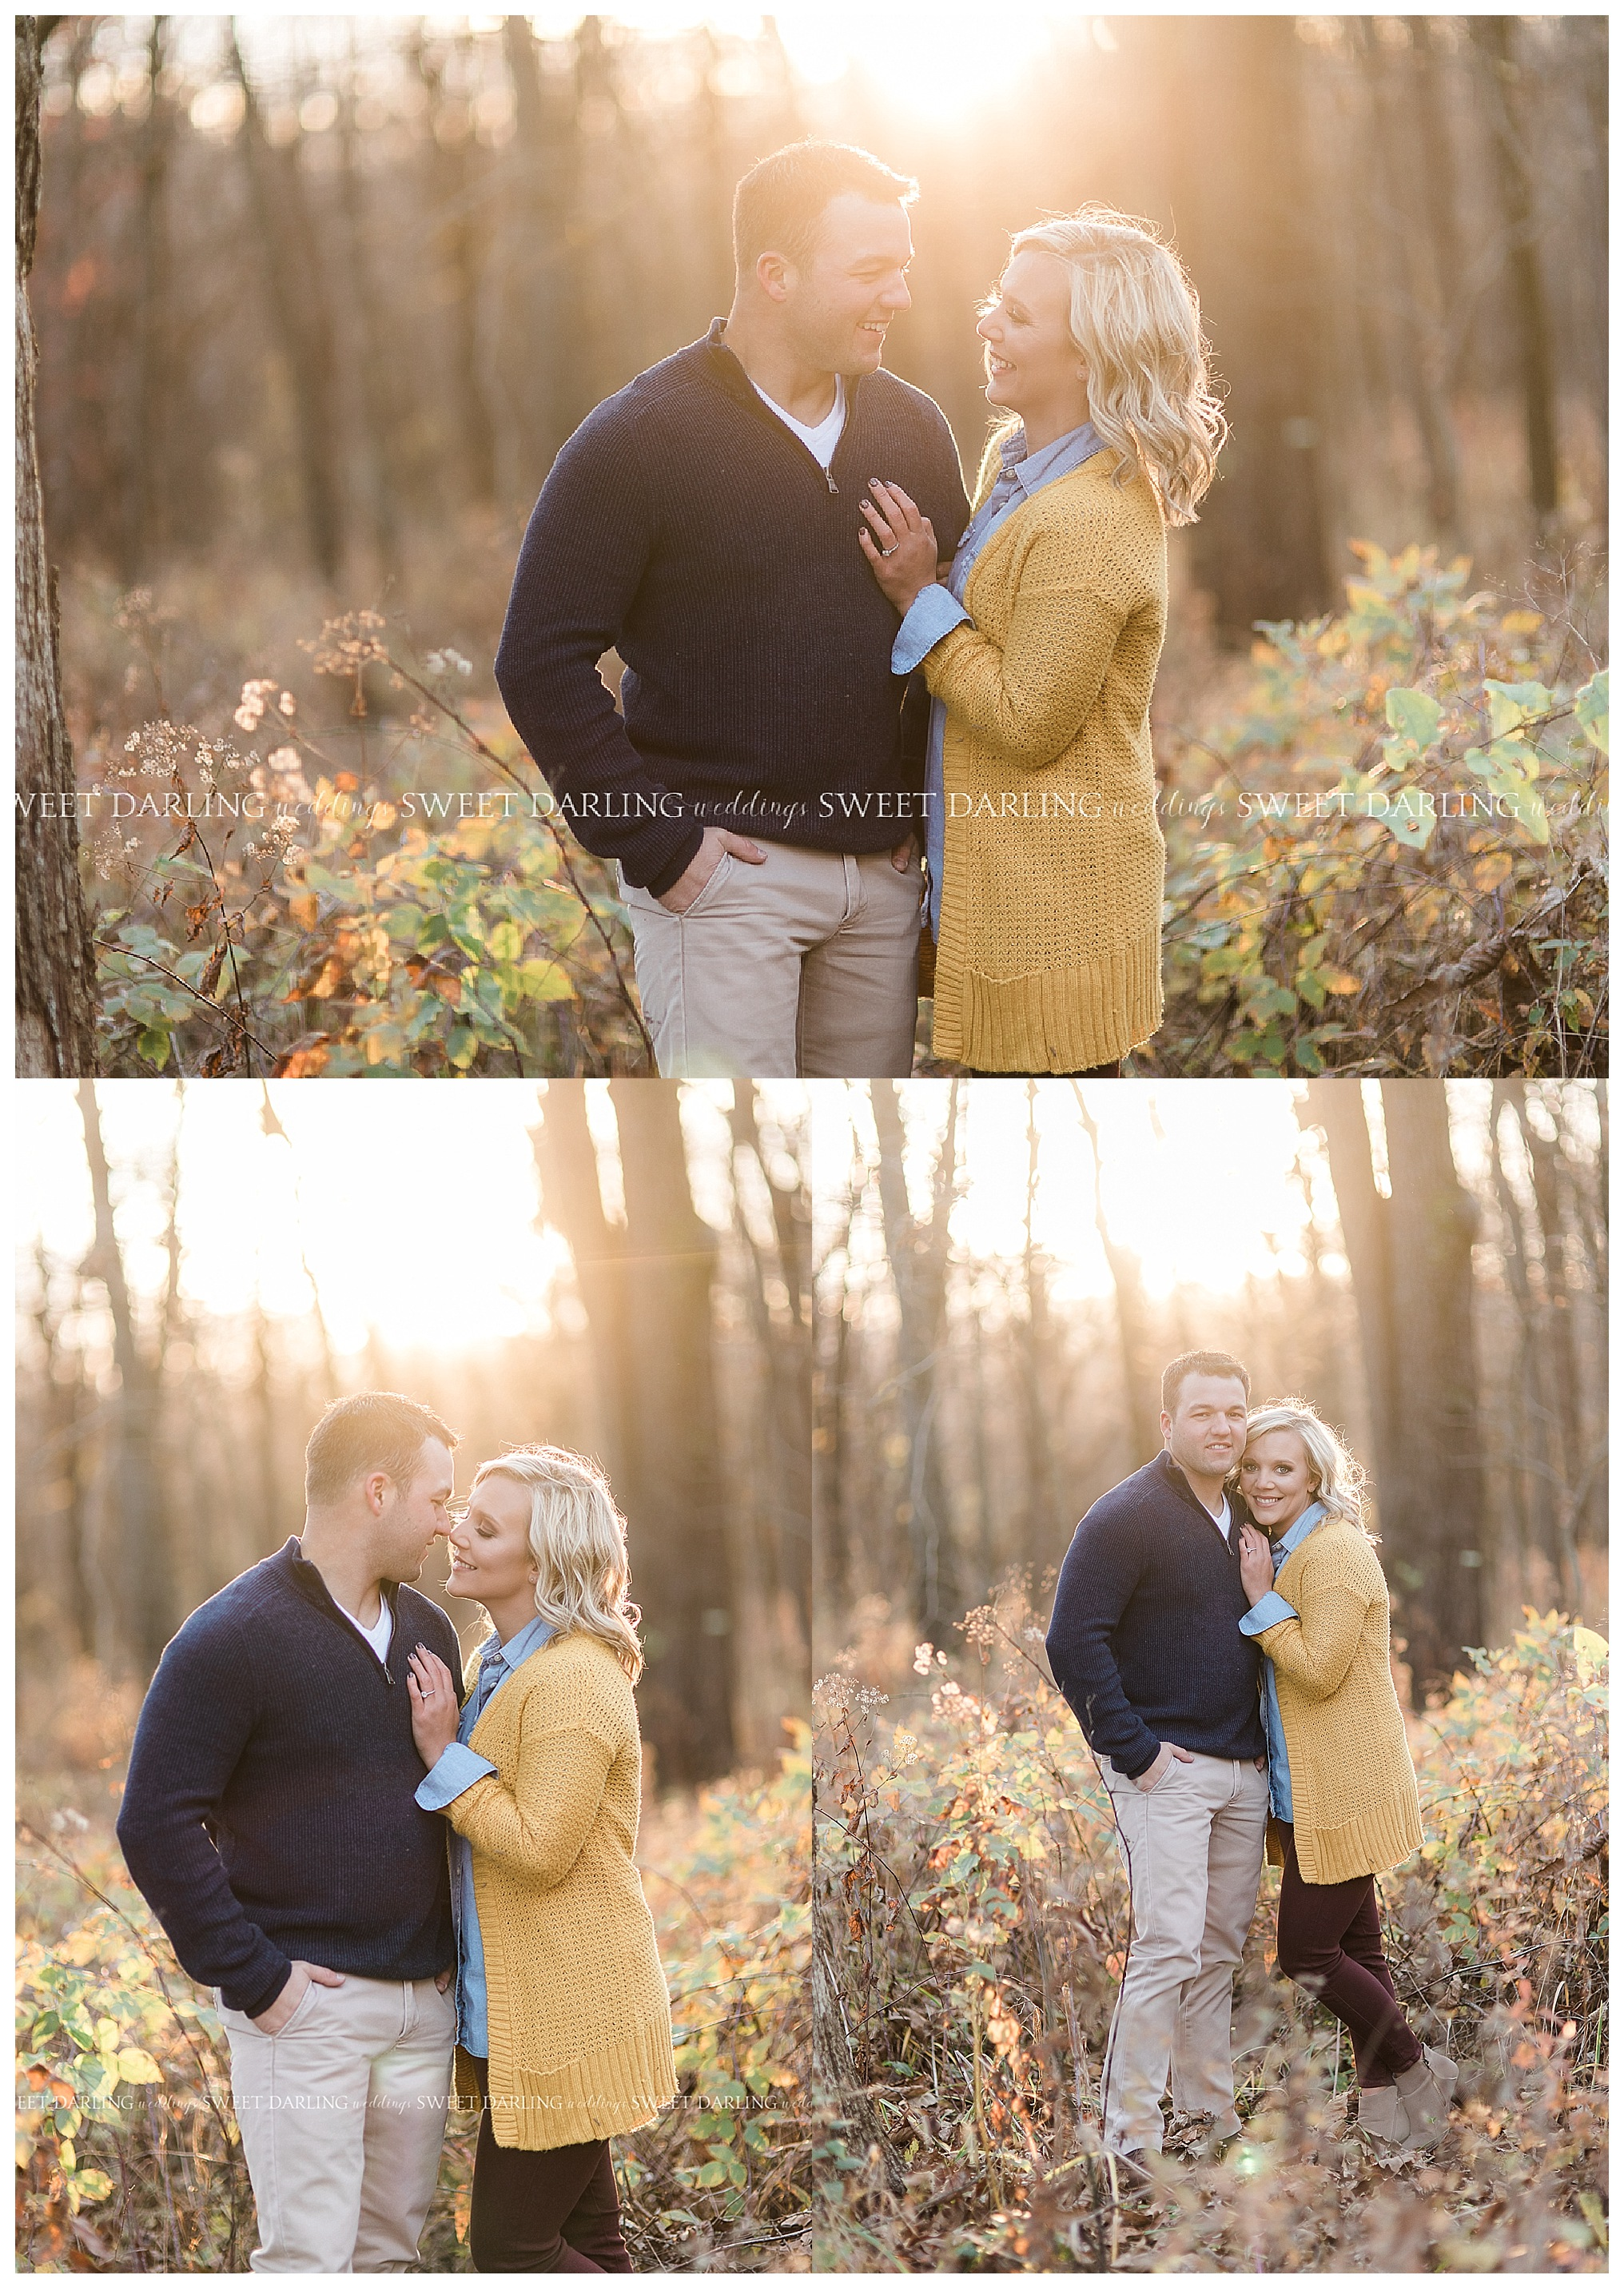 paxton-illinois-sweet-darling-weddings-photography-fall-engagement-session-ring-state-park_1014.jpg